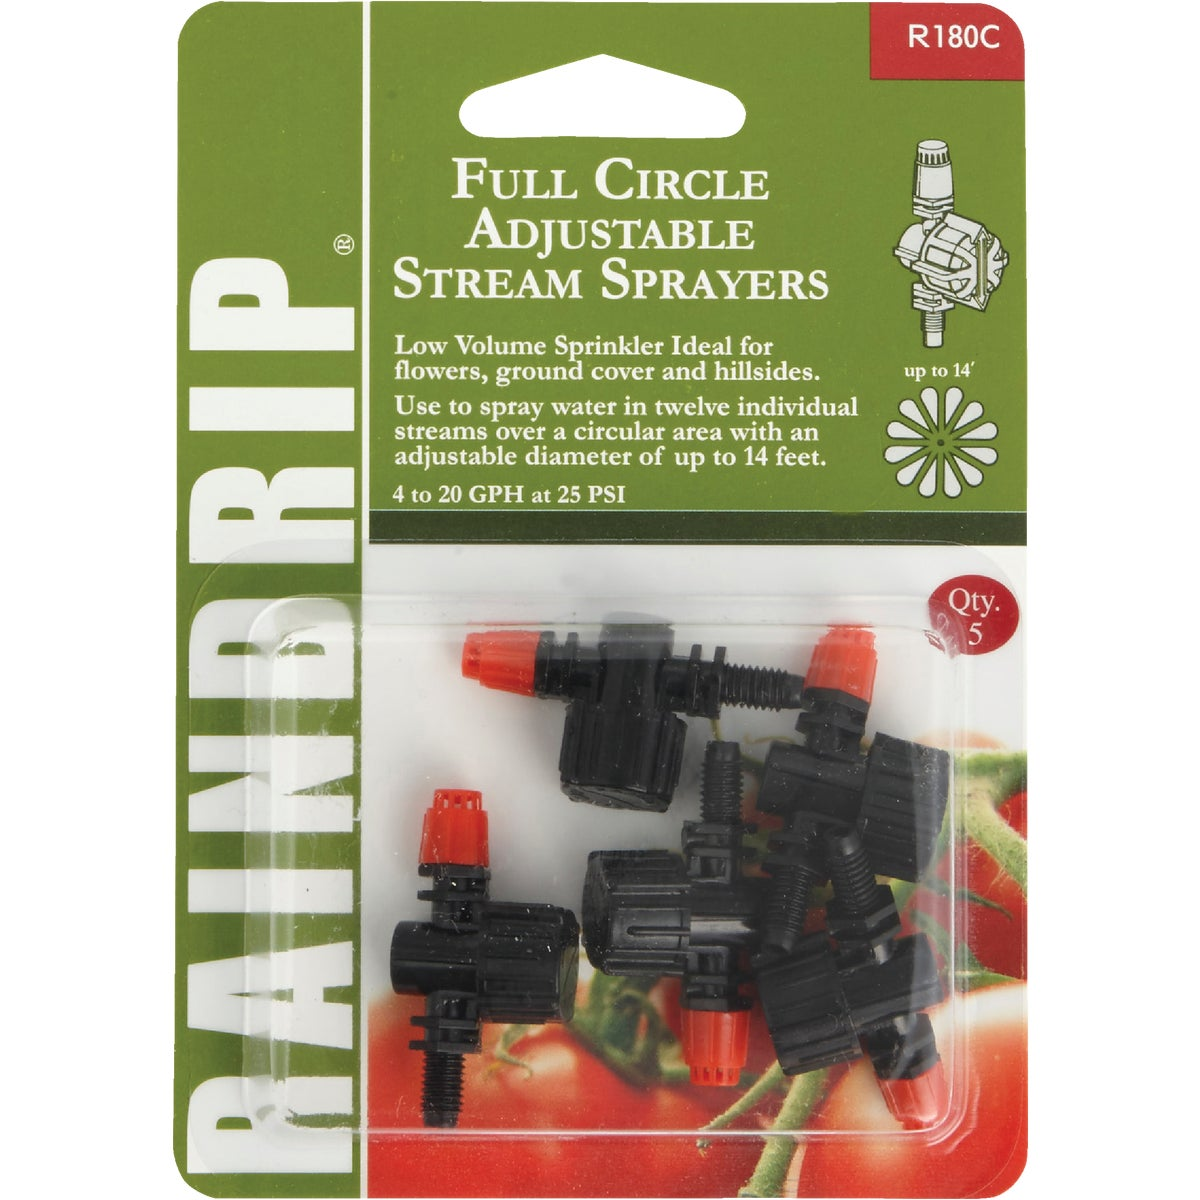 FULL ADJ STREAM SPRAYER - R180CT by Raindrip Inc